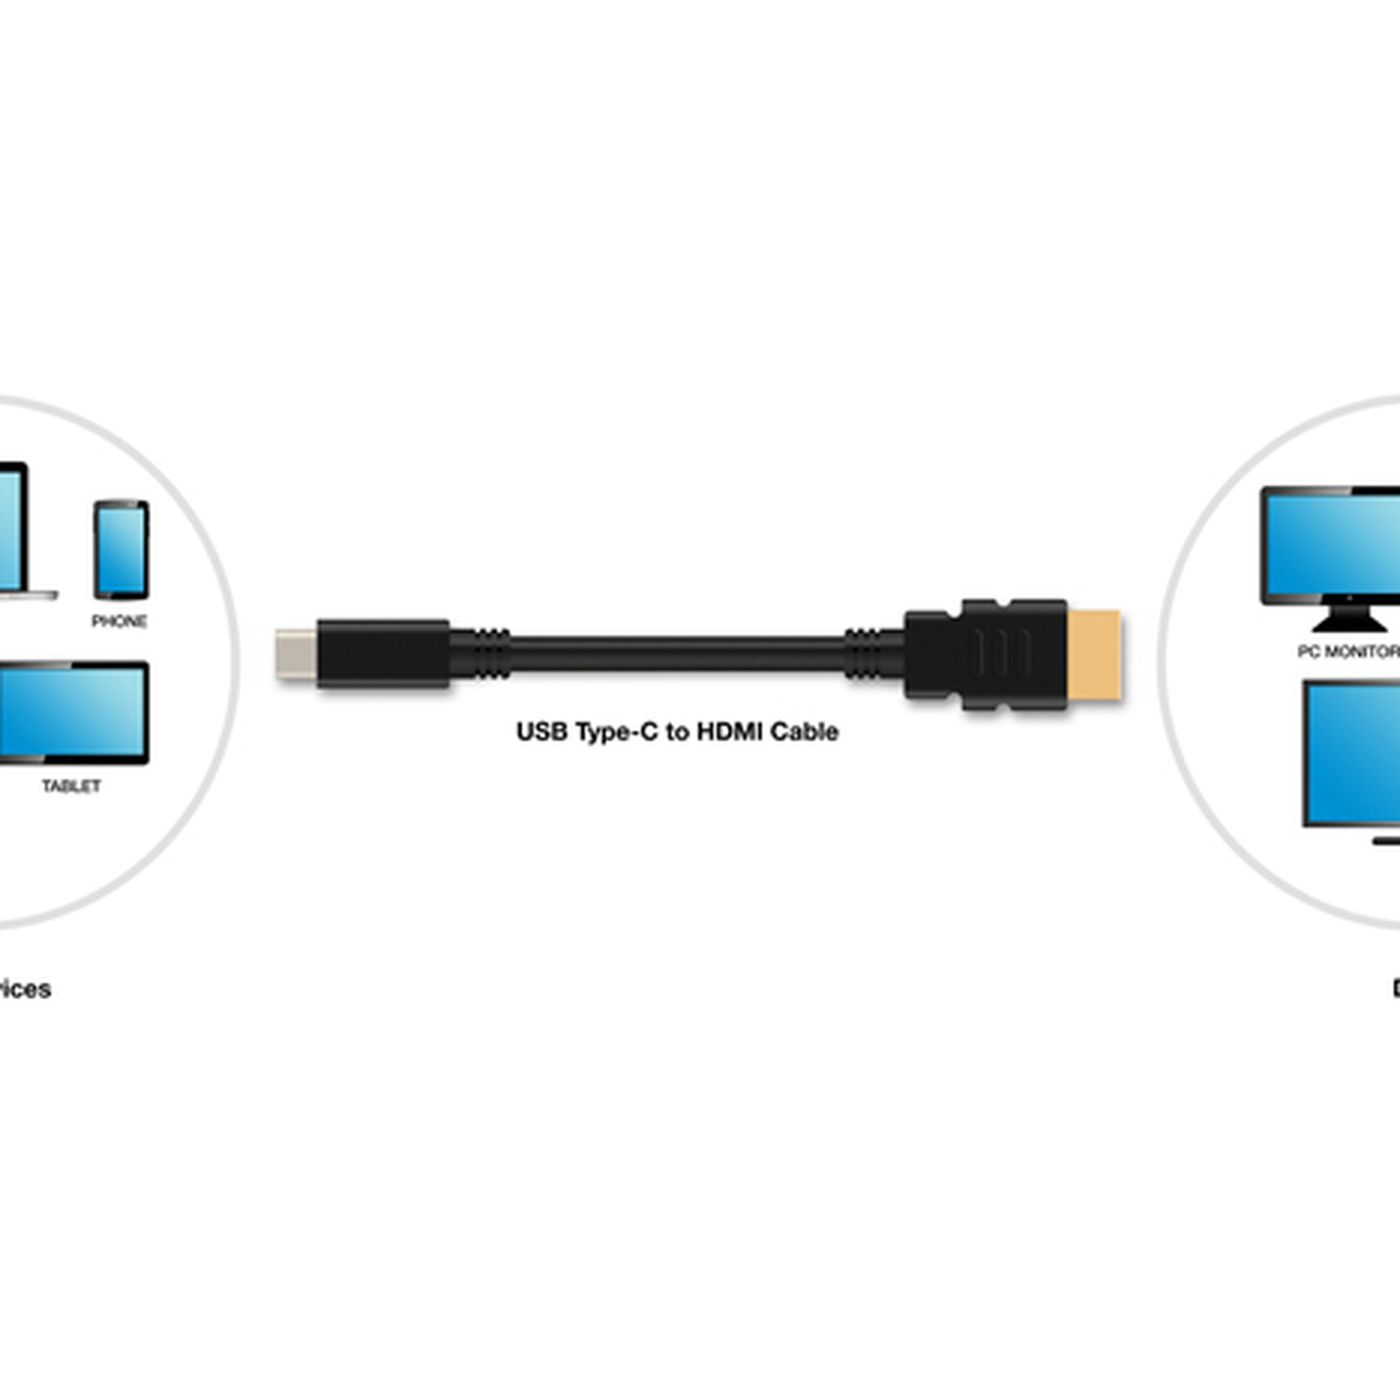 USB-C devices will be able to output to HDMI with new